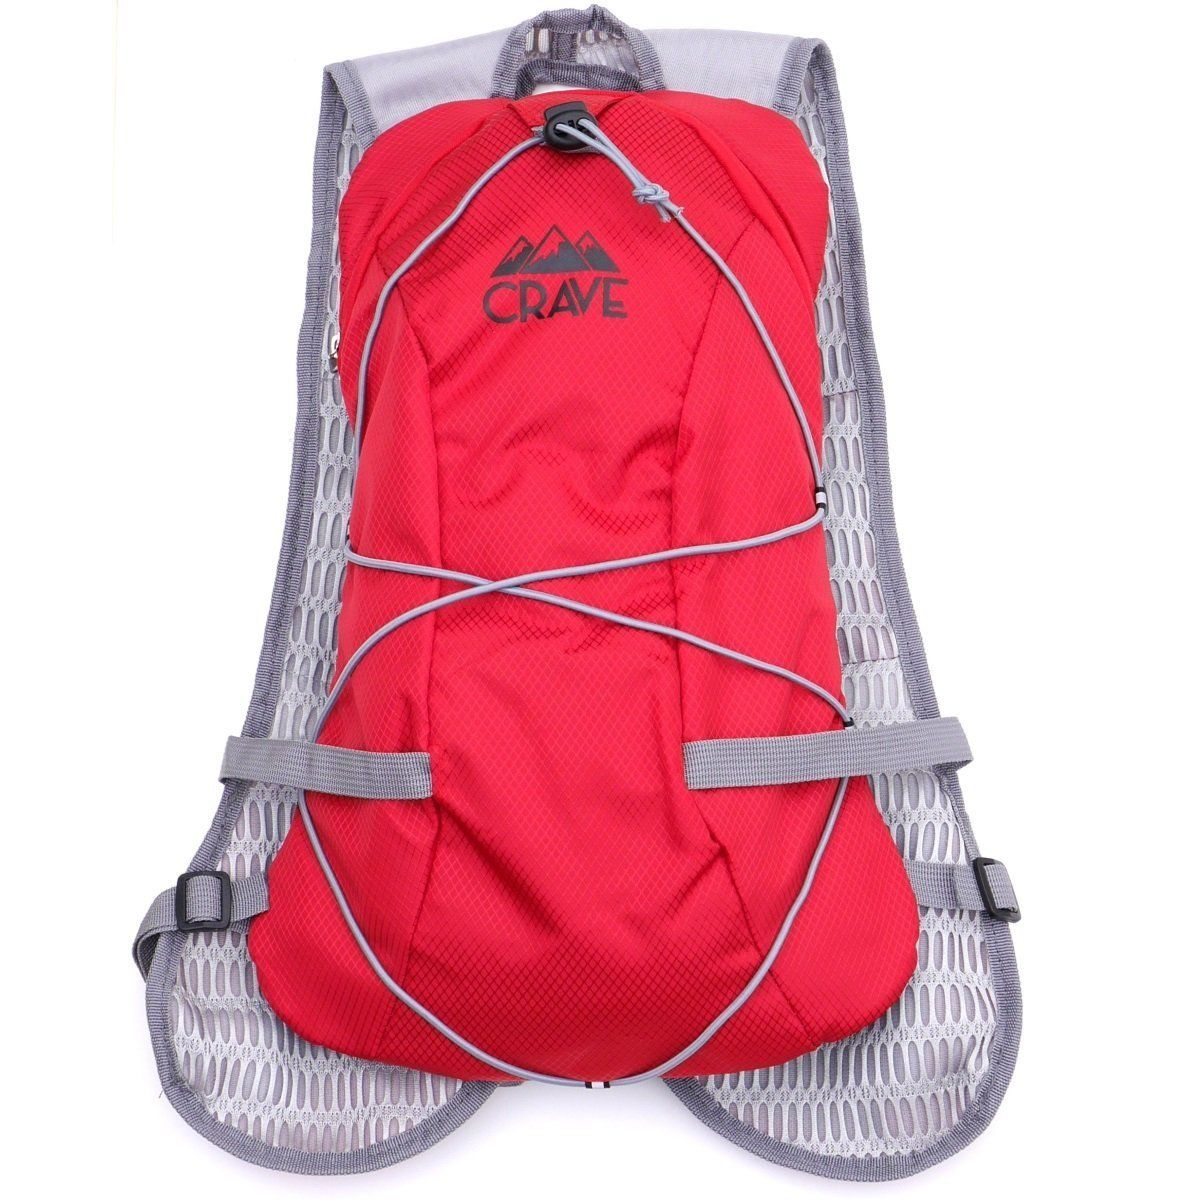 Crave Outdoors Hydration Backpack 1.5L Water Bladder Cycling Running Hiking  Pack. Fits Men Women Children.    Insider s special review you can t miss. 435e7b3b43470